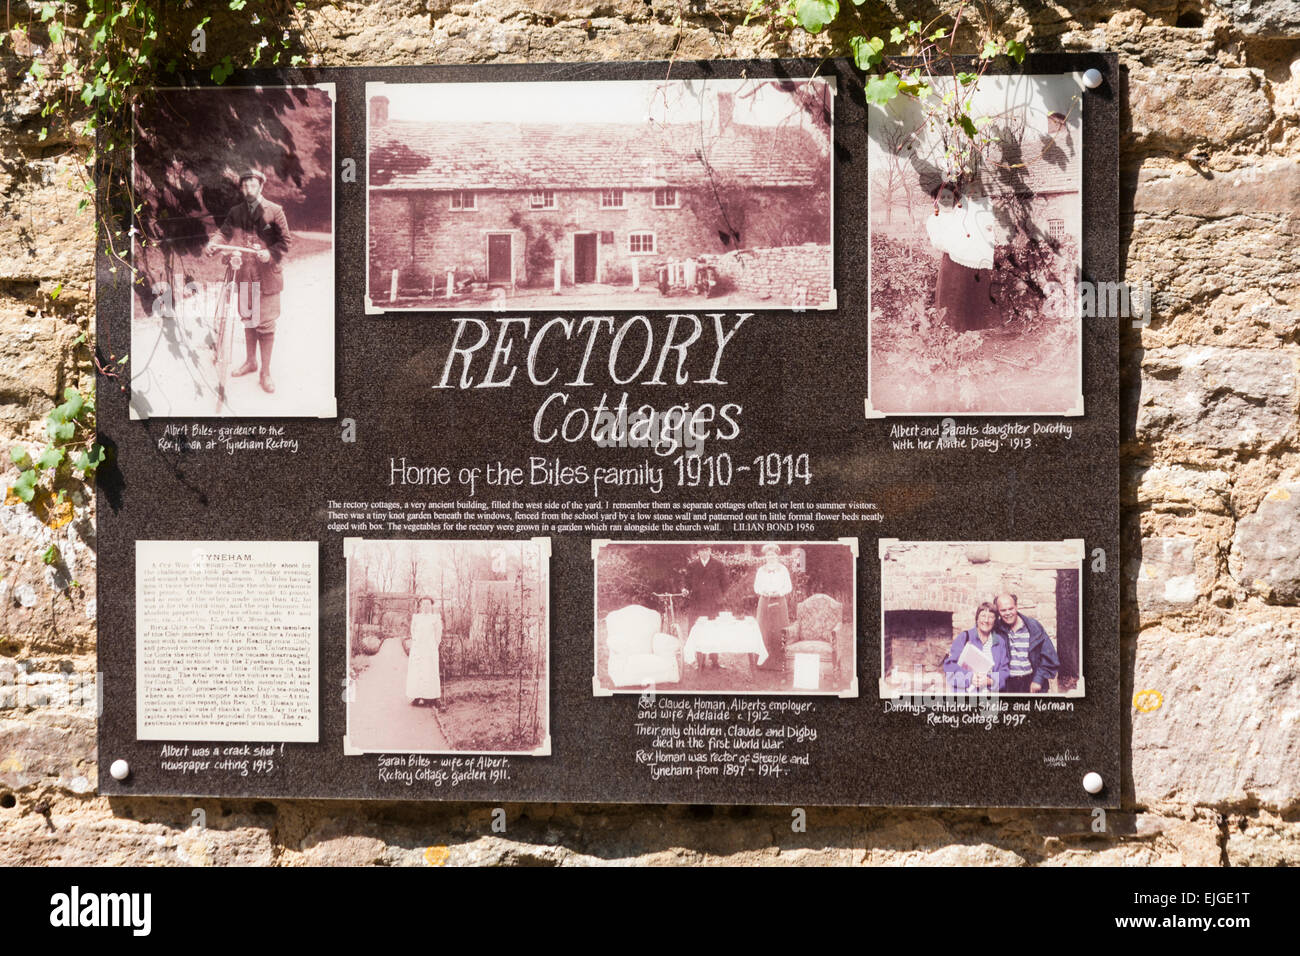 Notice board with information about Rectory Cottages Home of the Biles family 1910 - 1914 at Tyneham Village, Dorset - Stock Image